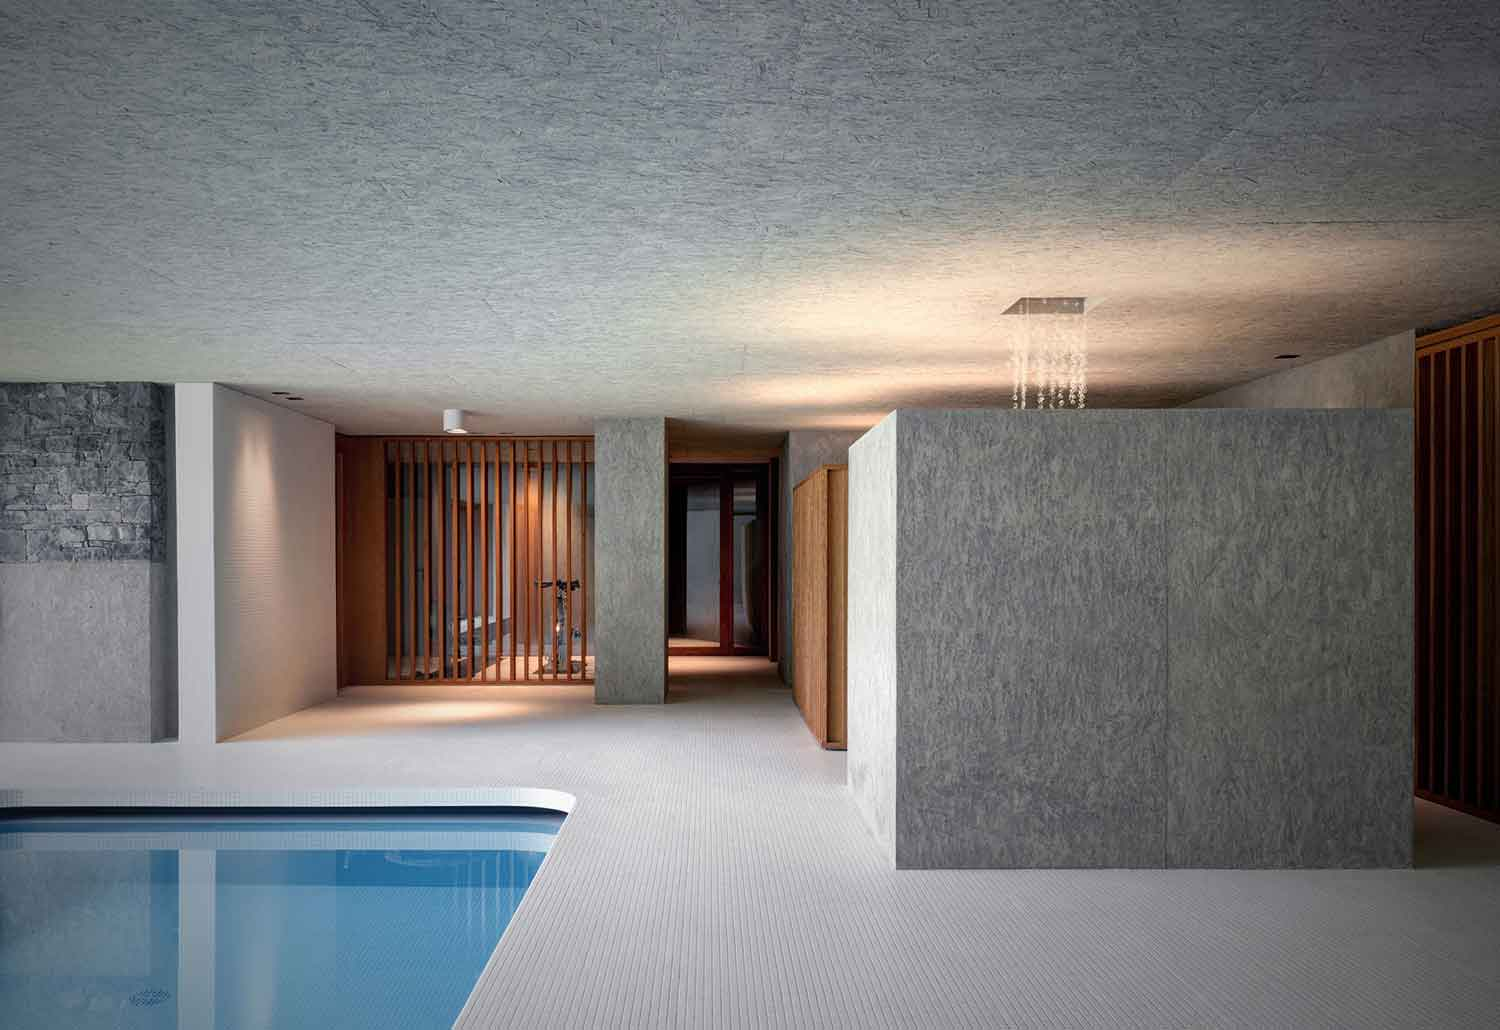 Luxury Indoor Swimming Pool by act_romegialli | Yellowtrace